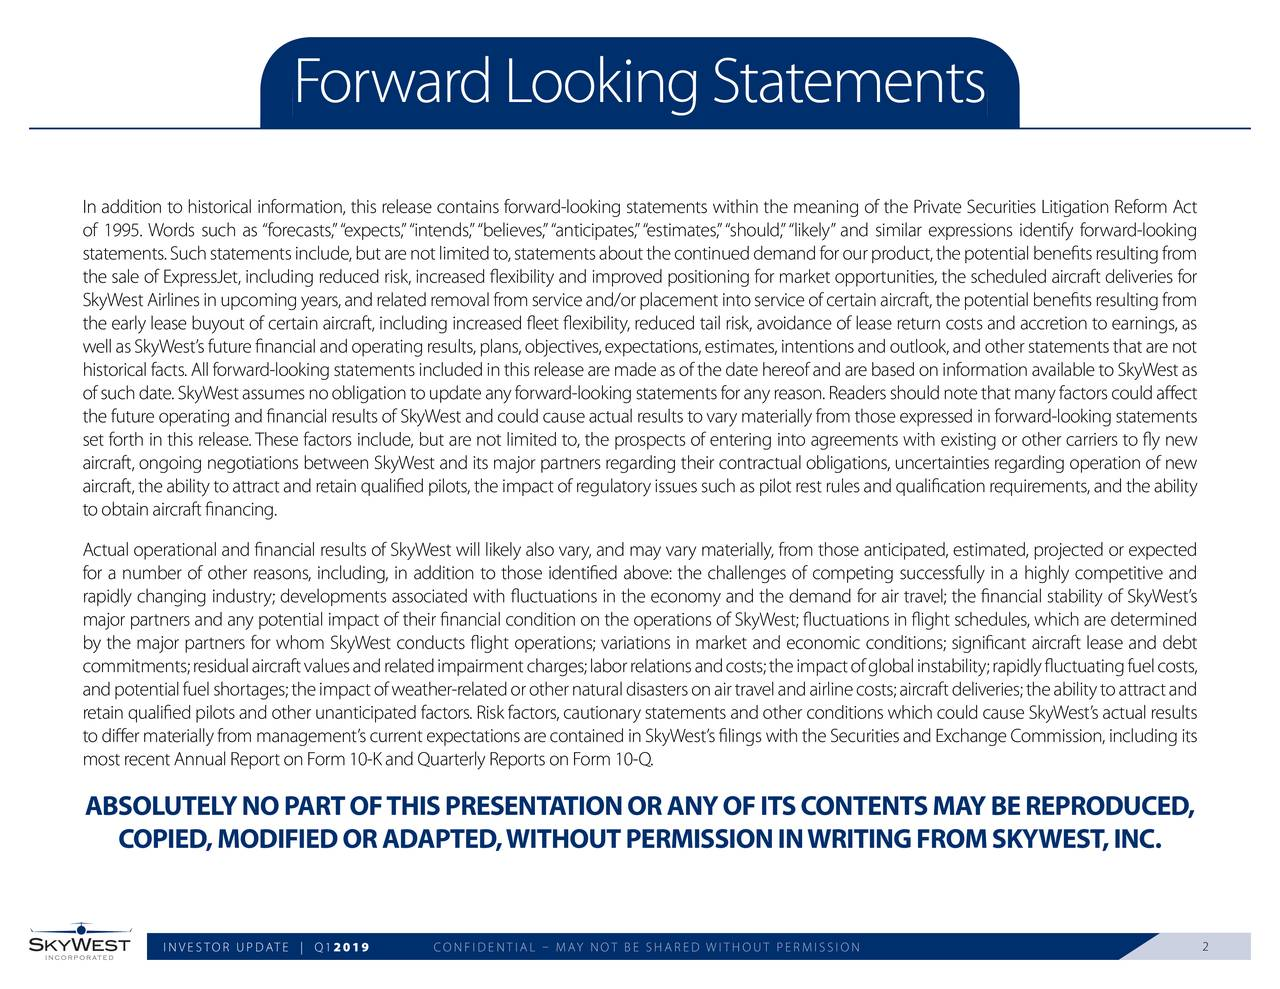 """In addition to historical information, this release contains forward-looking statements within the meaning of the Private Securities Litigation Reform Act of 1995. Words such as """"forecasts,""""""""expects,""""""""intends,""""""""believes,""""""""anticipates,""""""""estimates,""""""""should,""""""""likely"""" and similar expressions identify forward-looking statements. Such statements include, but are not limited to, statements about the continued demand for our product, the potential benefits resulting from the sale of ExpressJet, including reduced risk, increased flexibility and improved positioning for market opportunities, the scheduled aircraft deliveries for SkyWest Airlines in upcoming years, and related removal from service and/or placement into service of certain aircraft, the potential benefits resulting from the early lease buyout of certain aircraft, including increased fleet flexibility, reduced tail risk, avoidance of lease return costs and accretion to earnings, as well as SkyWest's future financial and operating results, plans, objectives, expectations, estimates, intentions and outlook, and other statements that are not historical facts. All forward-looking statements included in this release are made as of the date hereof and are based on information available to SkyWest as of such date. SkyWest assumes no obligation to update any forward-looking statements for any reason. Readers should note that many factors could affect the future operating and financial results of SkyWest and could cause actual results to vary materially from those expressed in forward-looking statements set forth in this release.These factors include, but are not limited to, the prospects of entering into agreements with existing or other carriers to fly new aircraft, ongoing negotiations between SkyWest and its major partners regarding their contractual obligations, uncertainties regarding operation of new aircraft, the ability to attract and retain qualified pilots, the impact of regulatory issues such as pilot rest rul"""